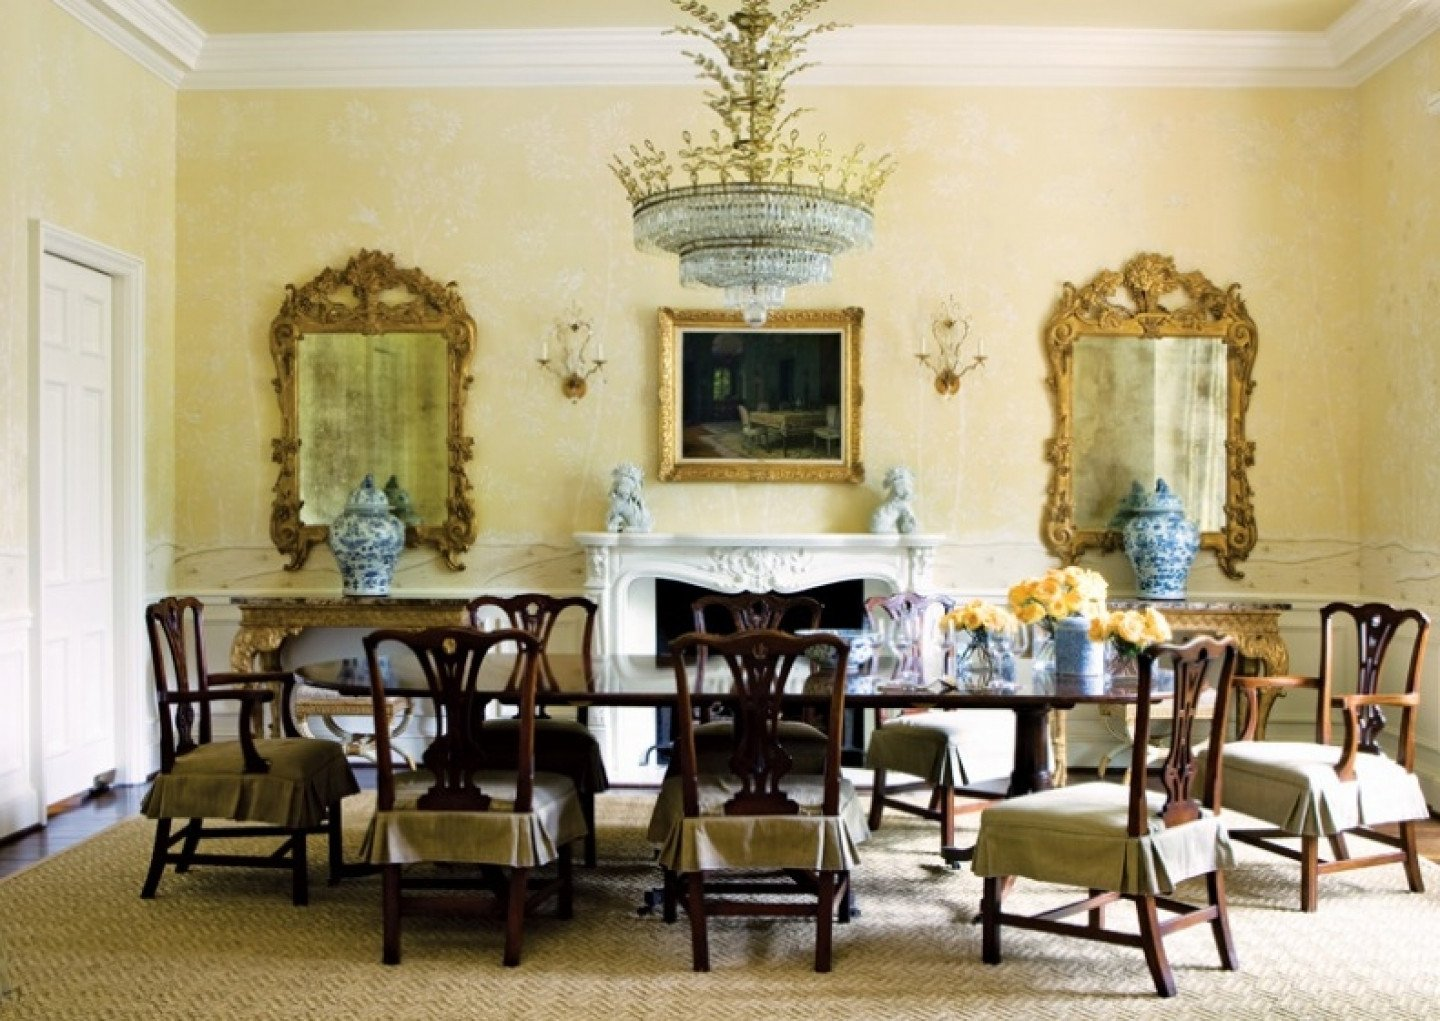 Formal Dining Room Wall Decor Unique the Best formal Dining Room Wall Art